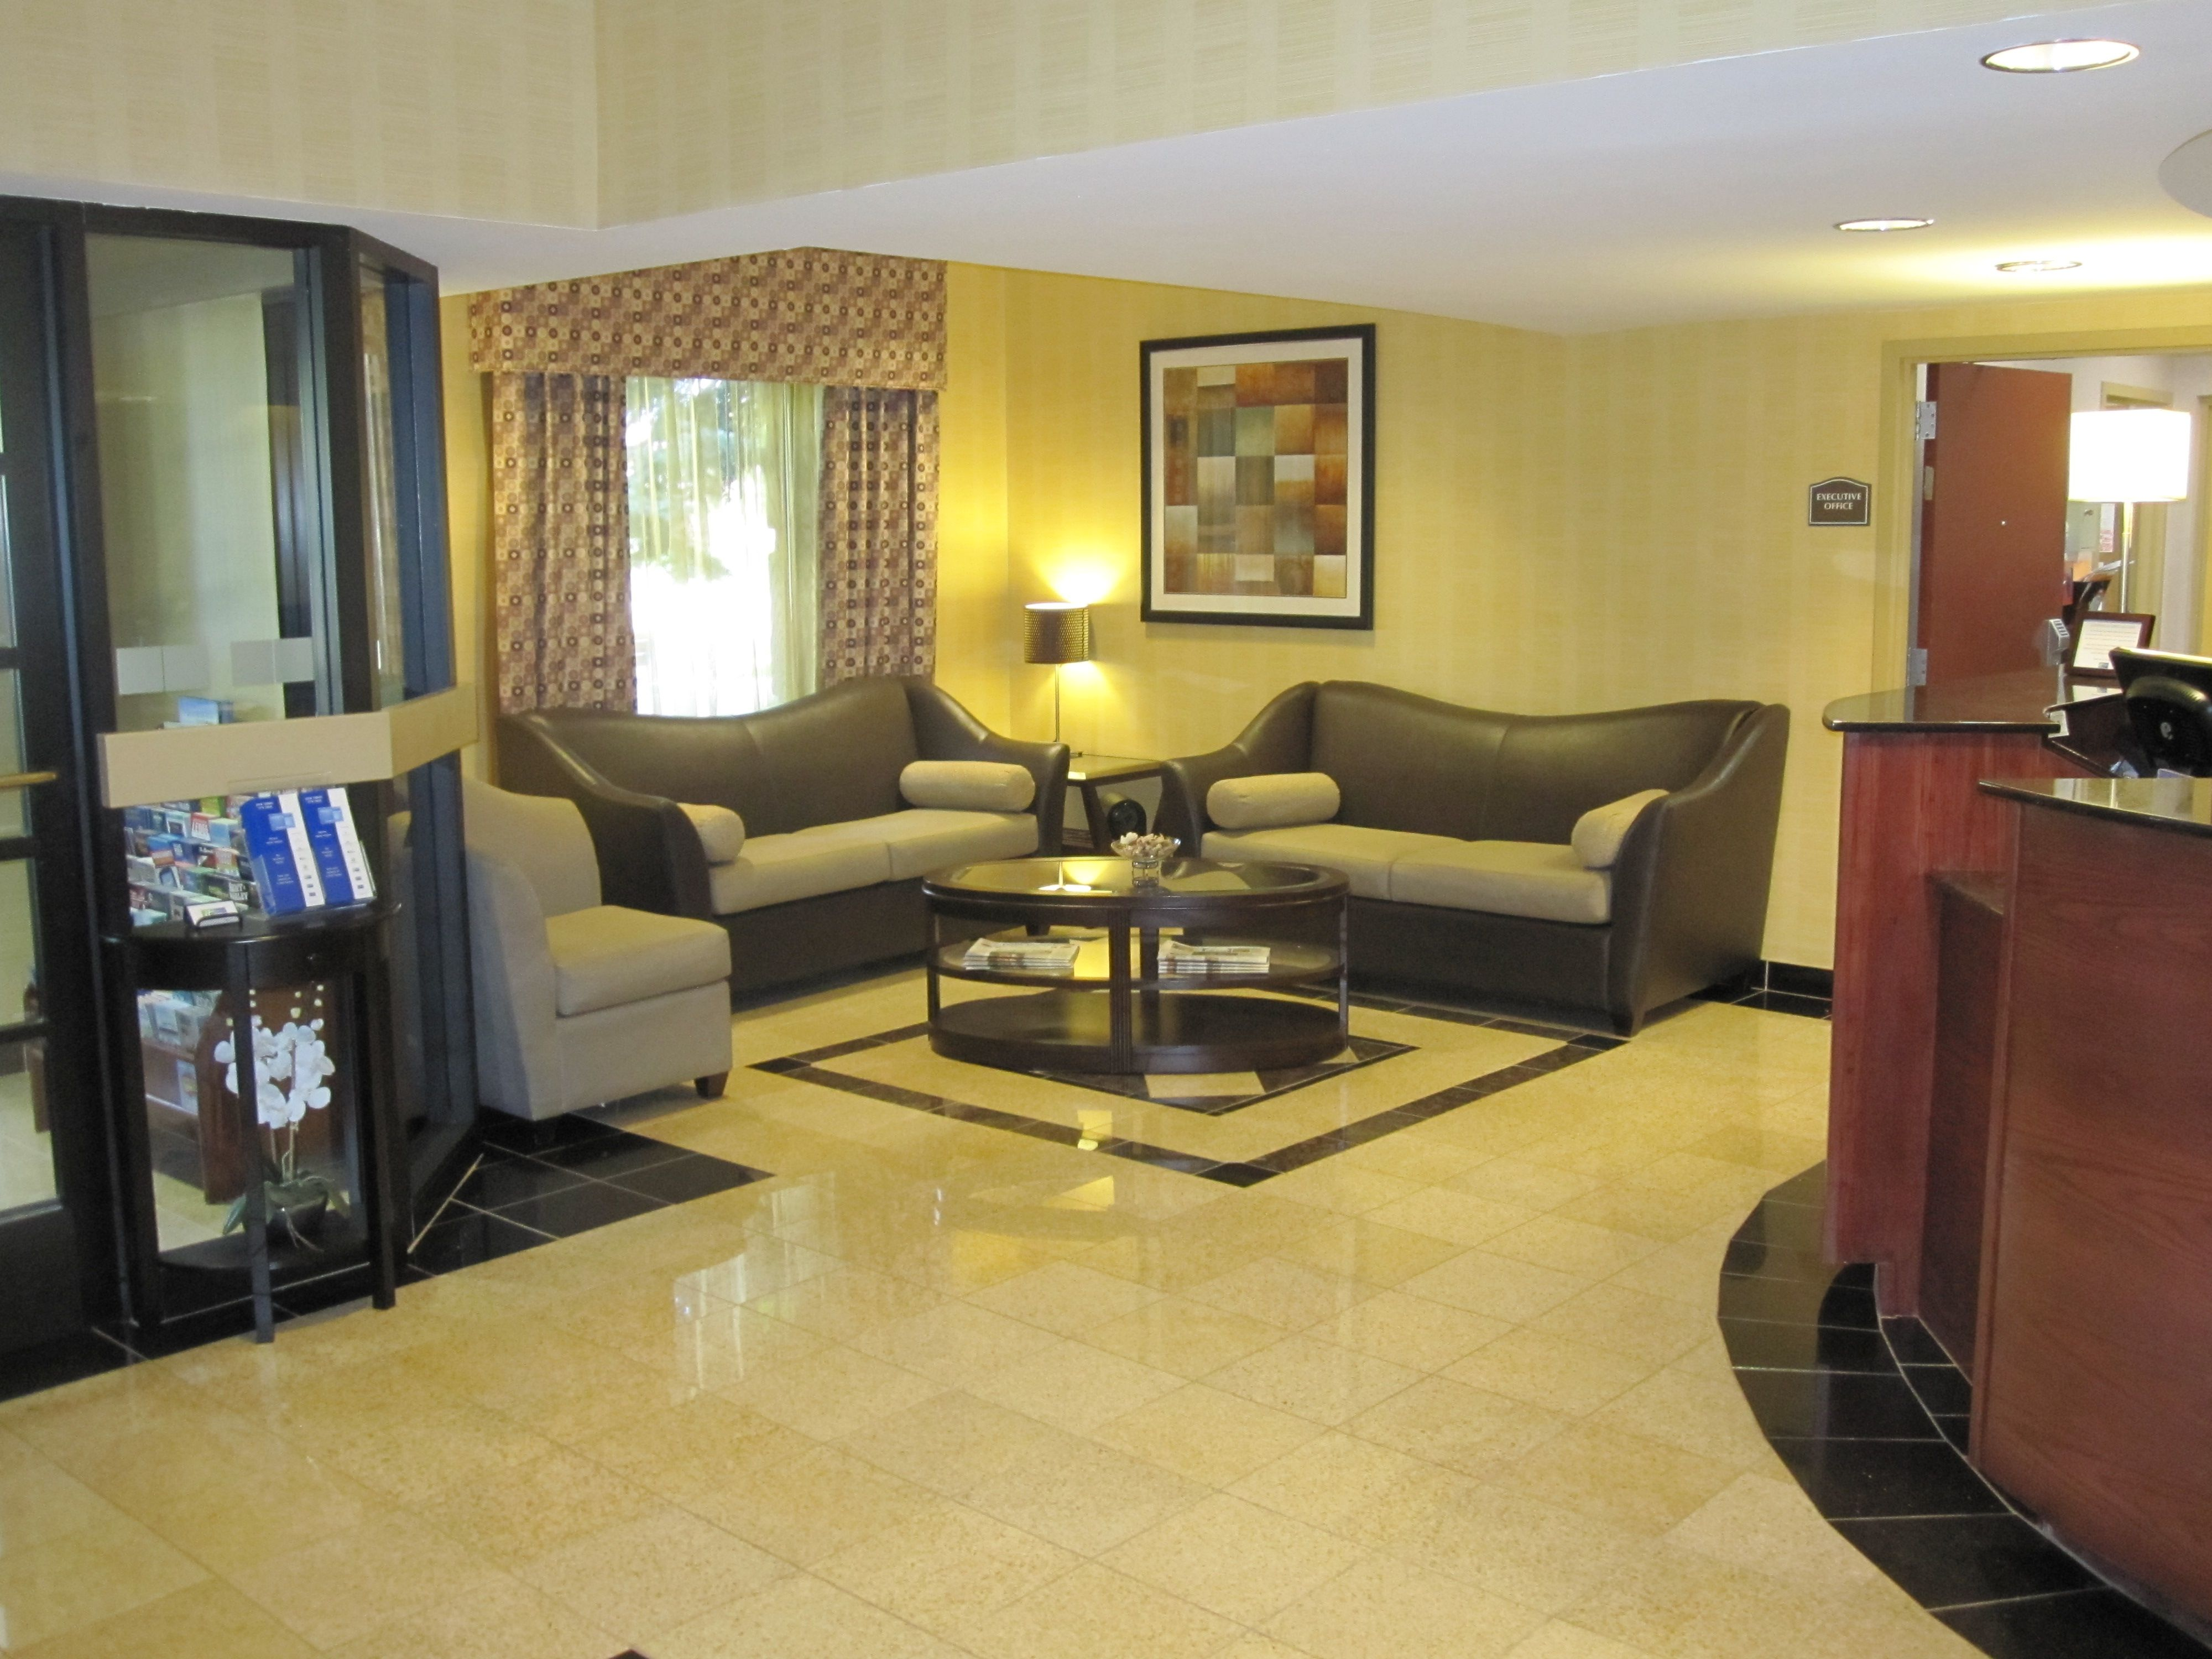 Hotels & Motels in Schaumburg, IL | Schaumburg Illinois Hotels ...